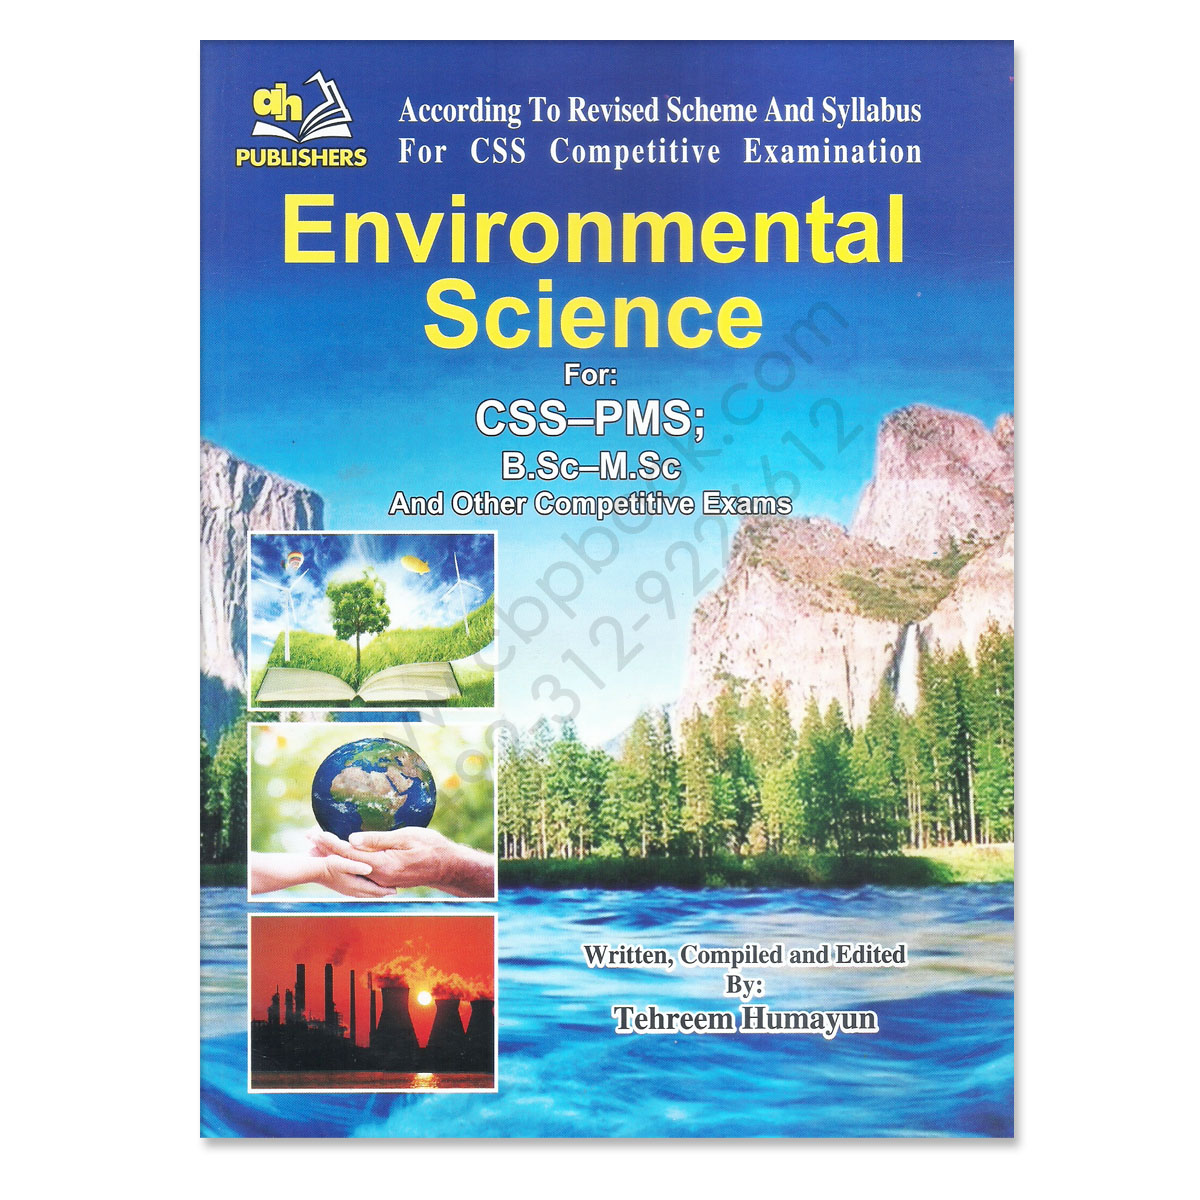 environmental science for css pms by tehreem humayun ah publisher